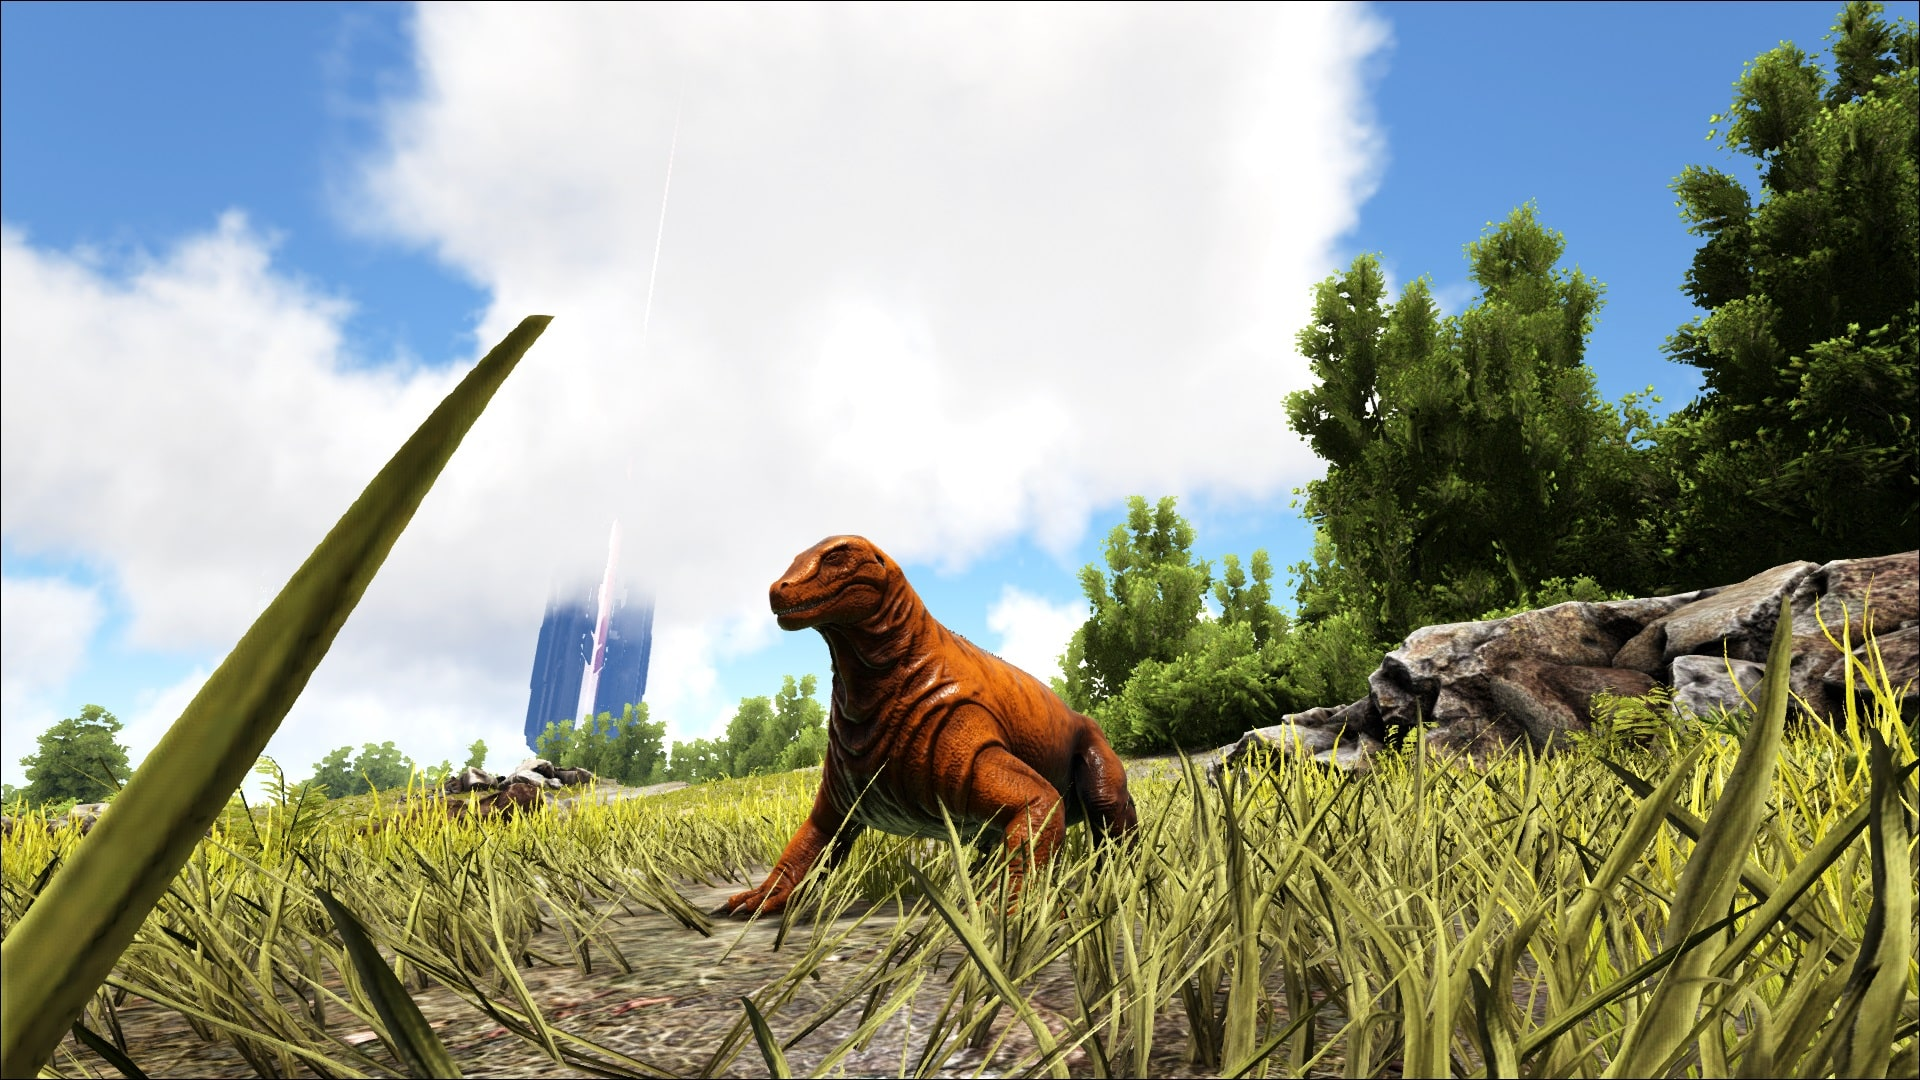 Moschops, Ark: Survival Evolved